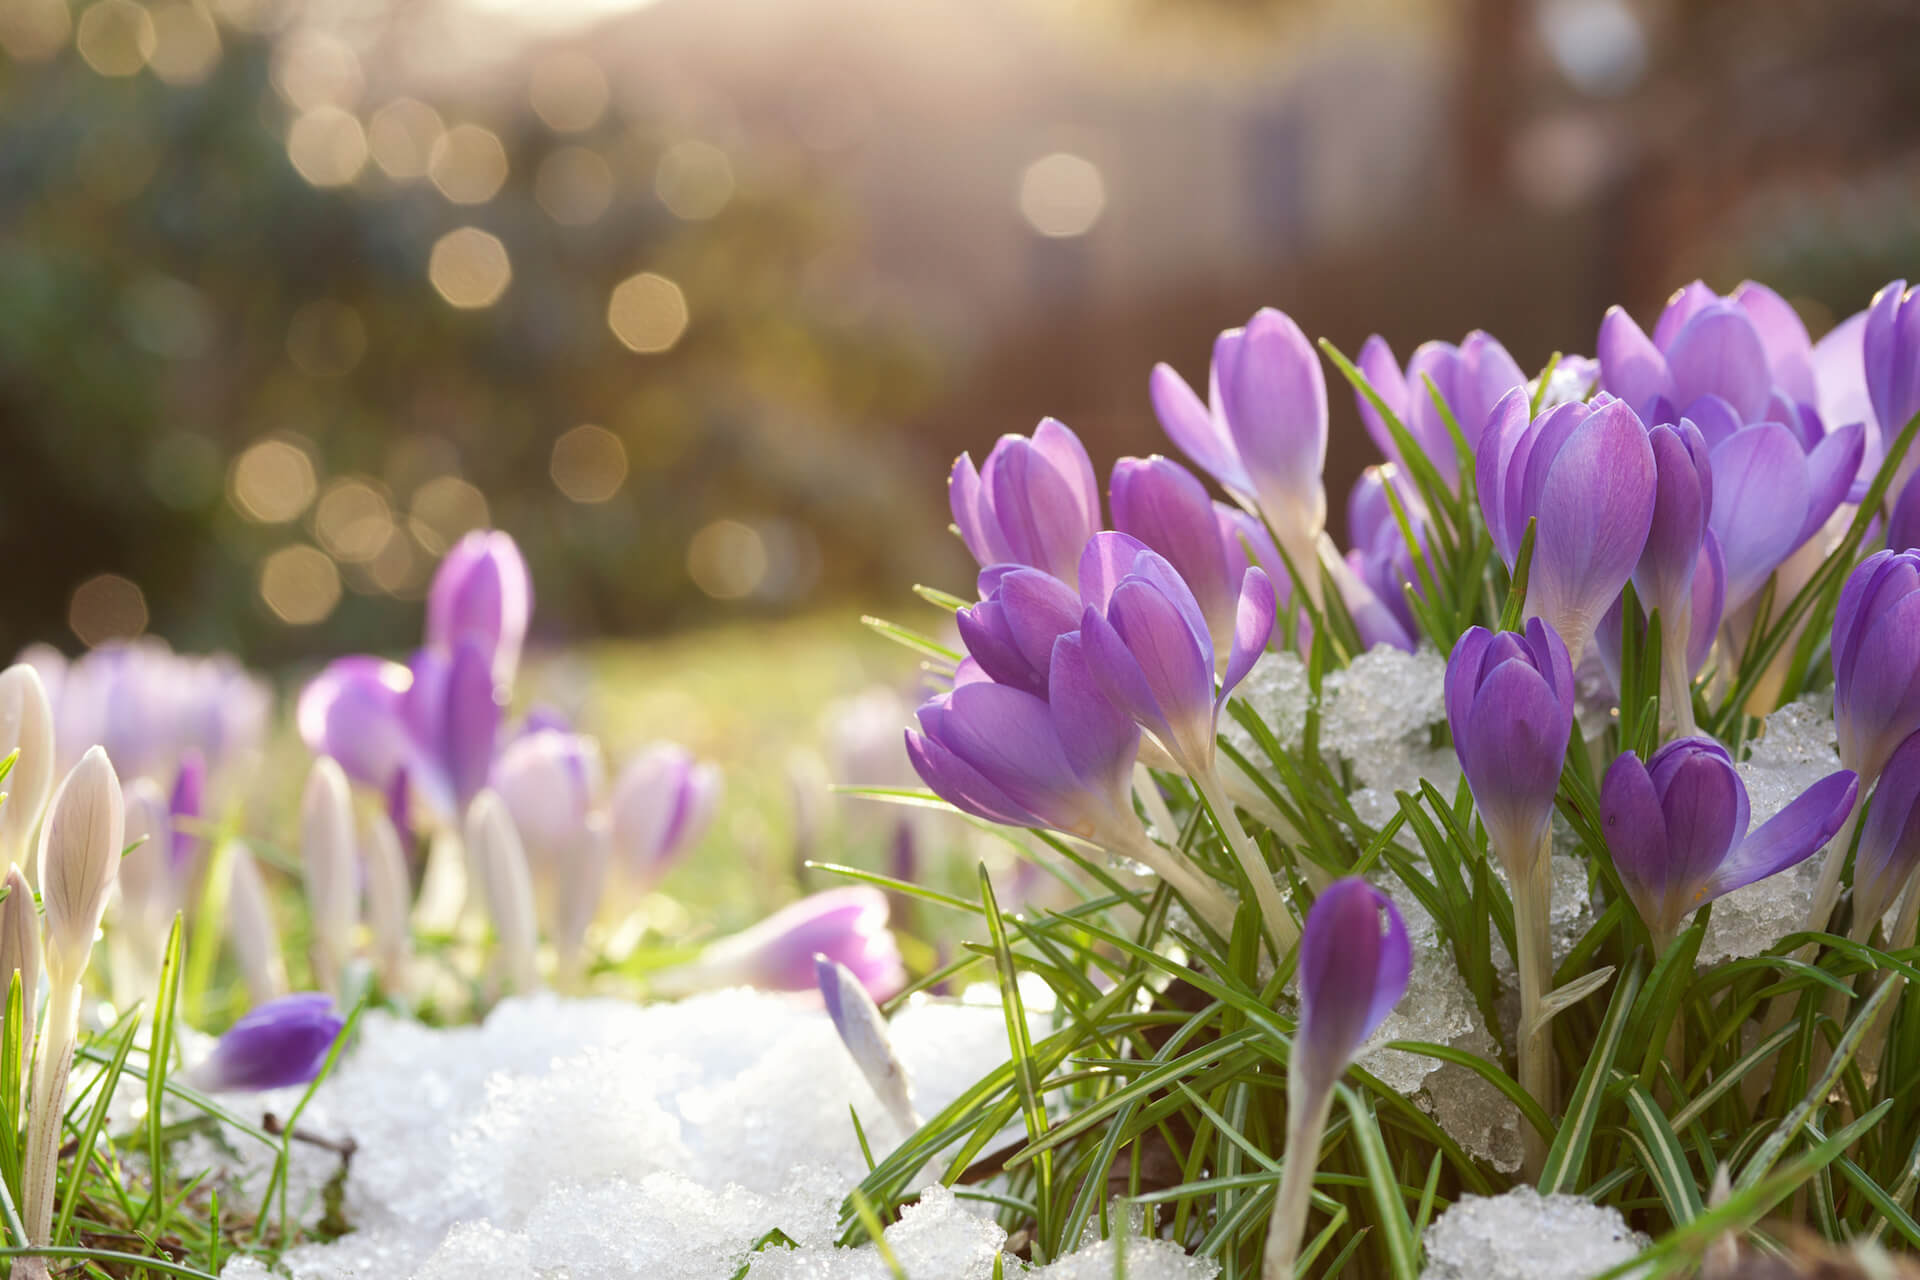 Lilac colored crocuses in spring snow .